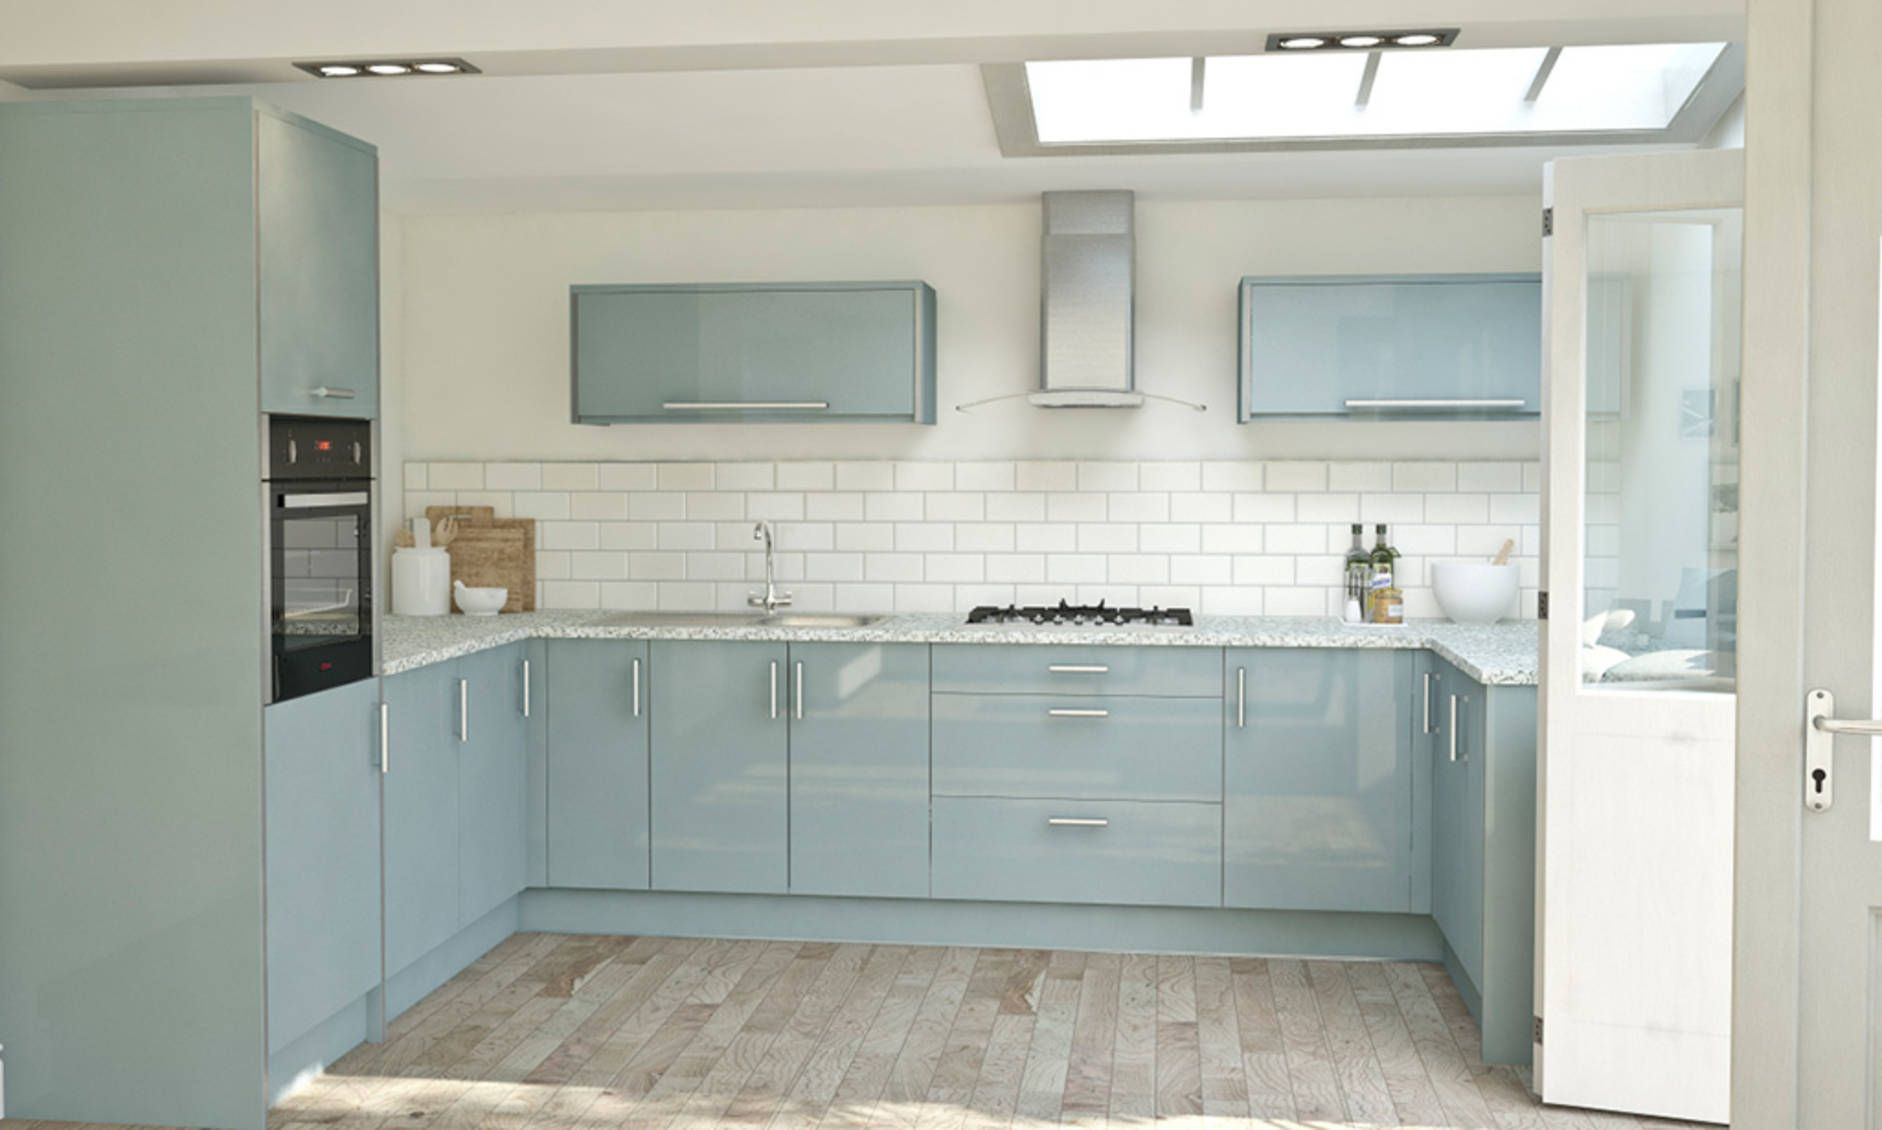 Pacrylic Blue Quartz Gloss Kitchen image 3 | Kitchens | Pinterest ...